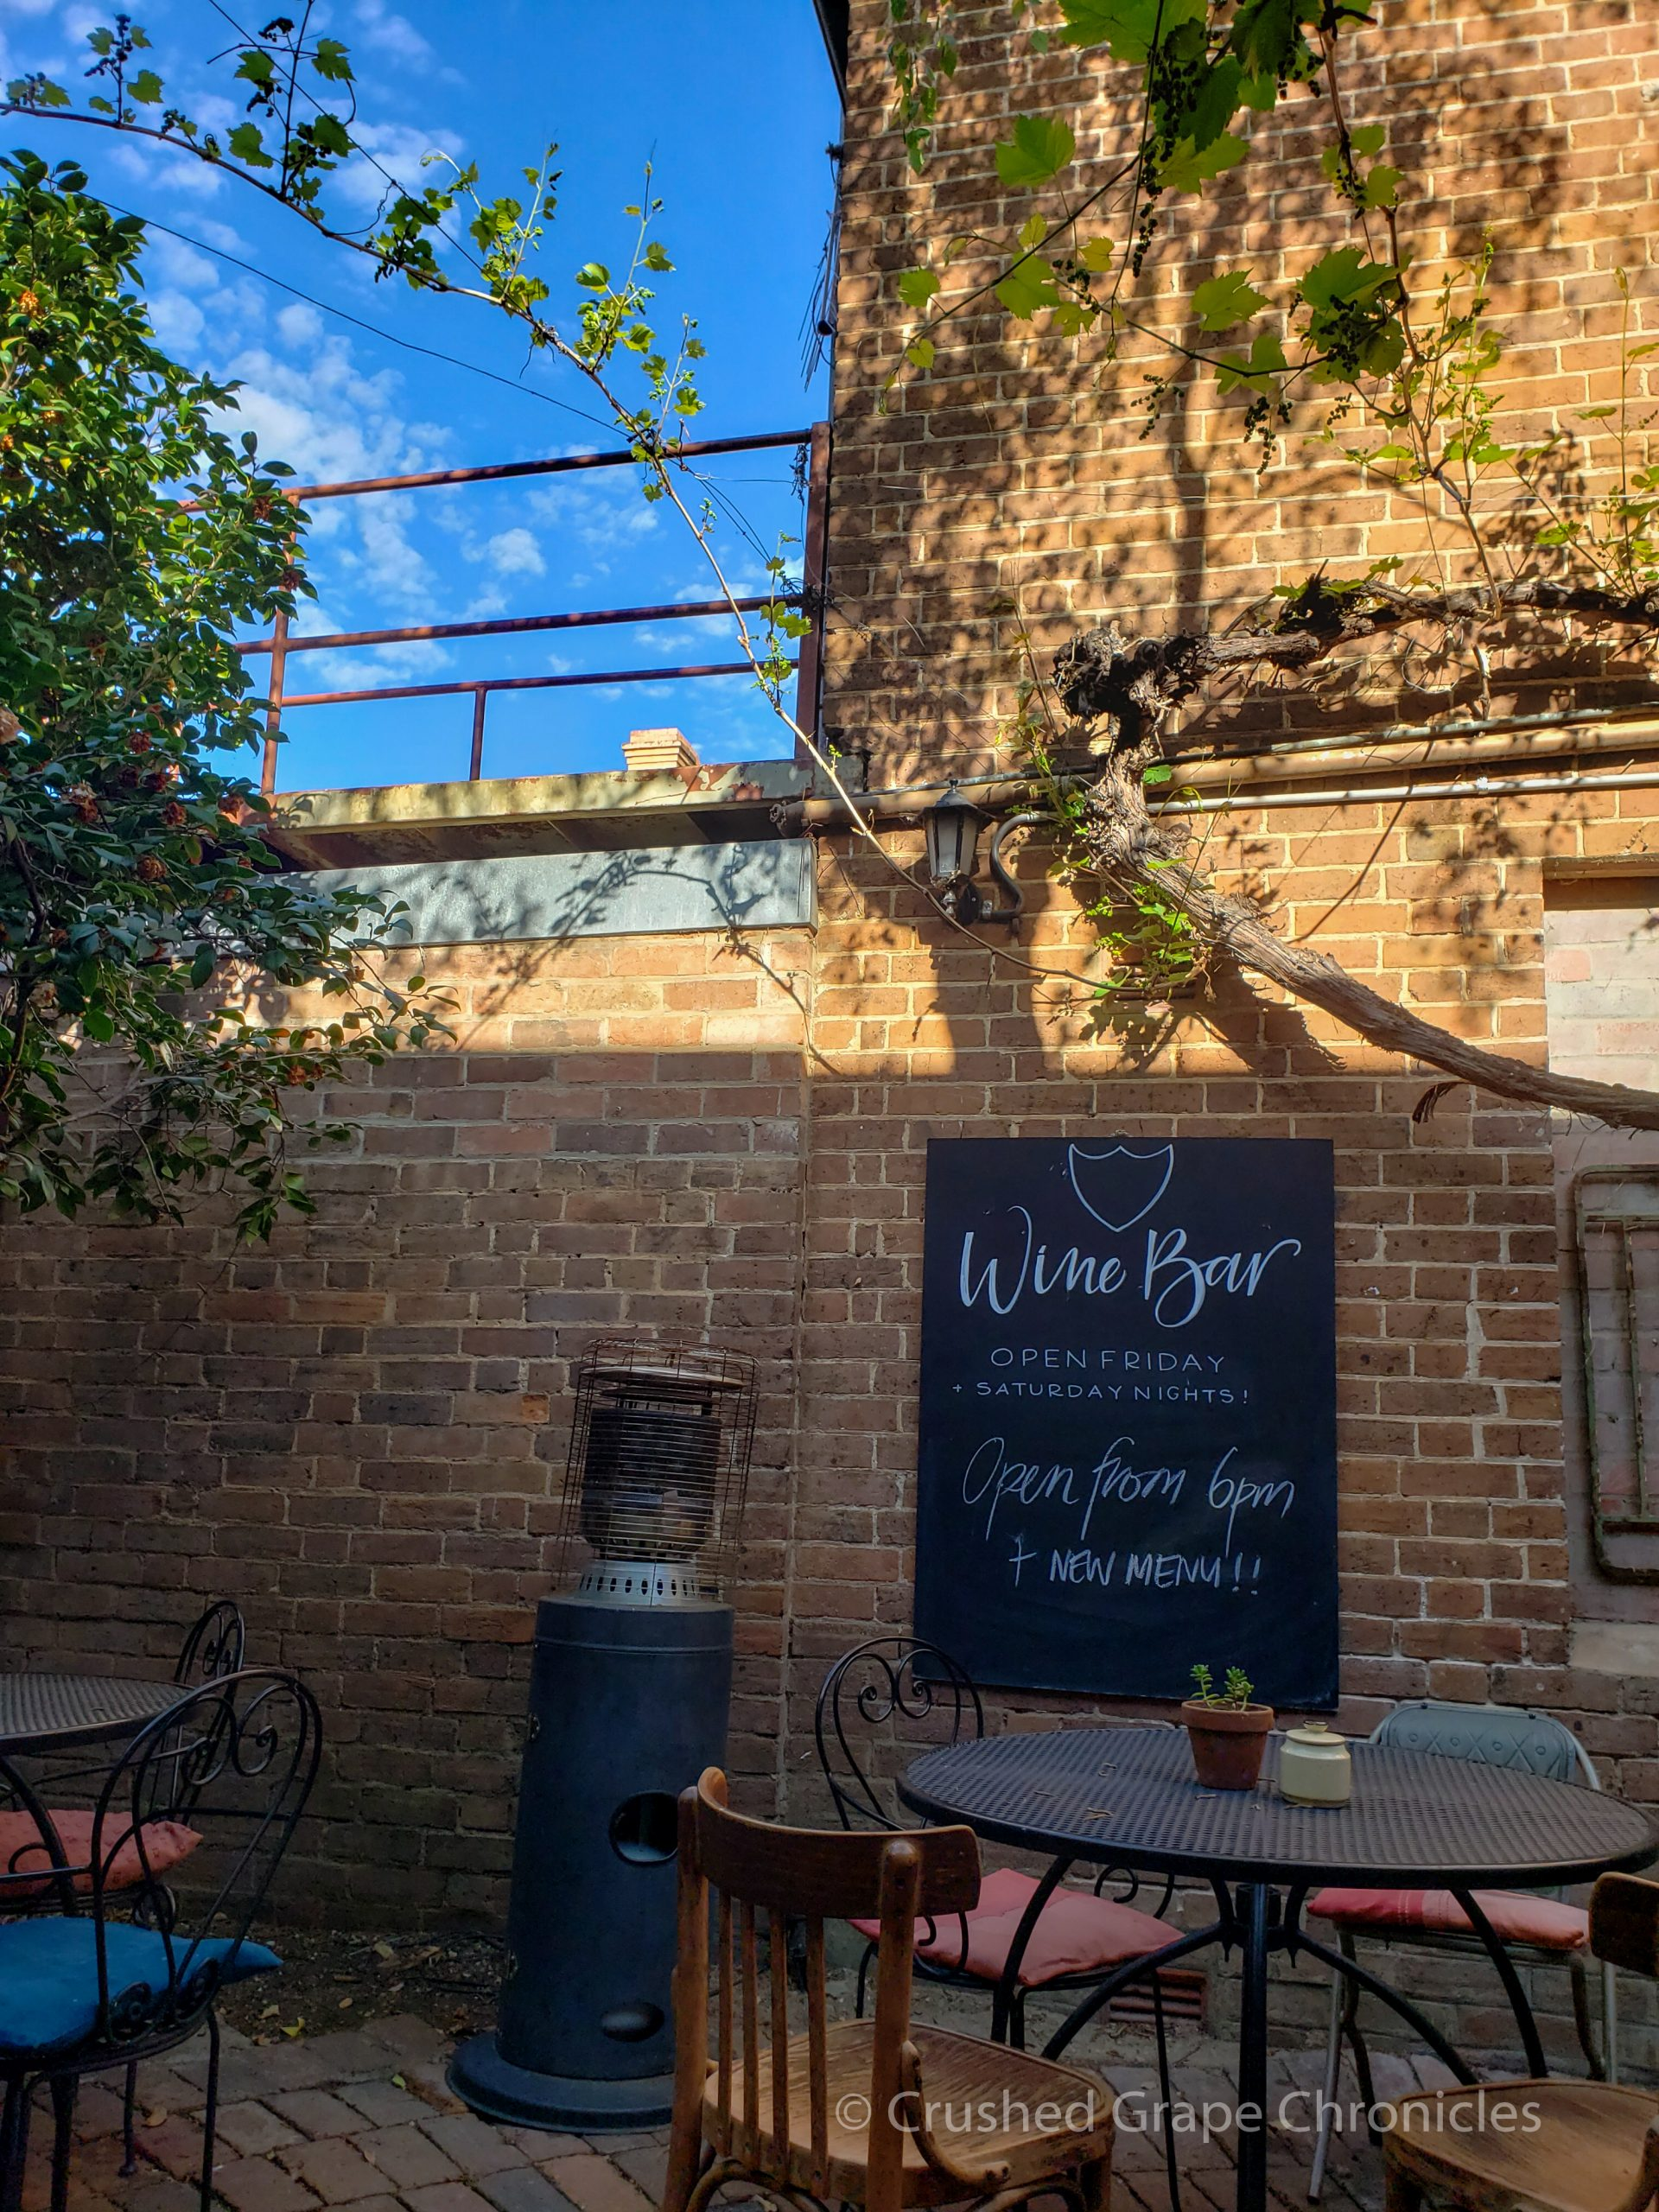 In addition to great breakfast, in the evening Alby + Esther's becomes a relaxing wine bar